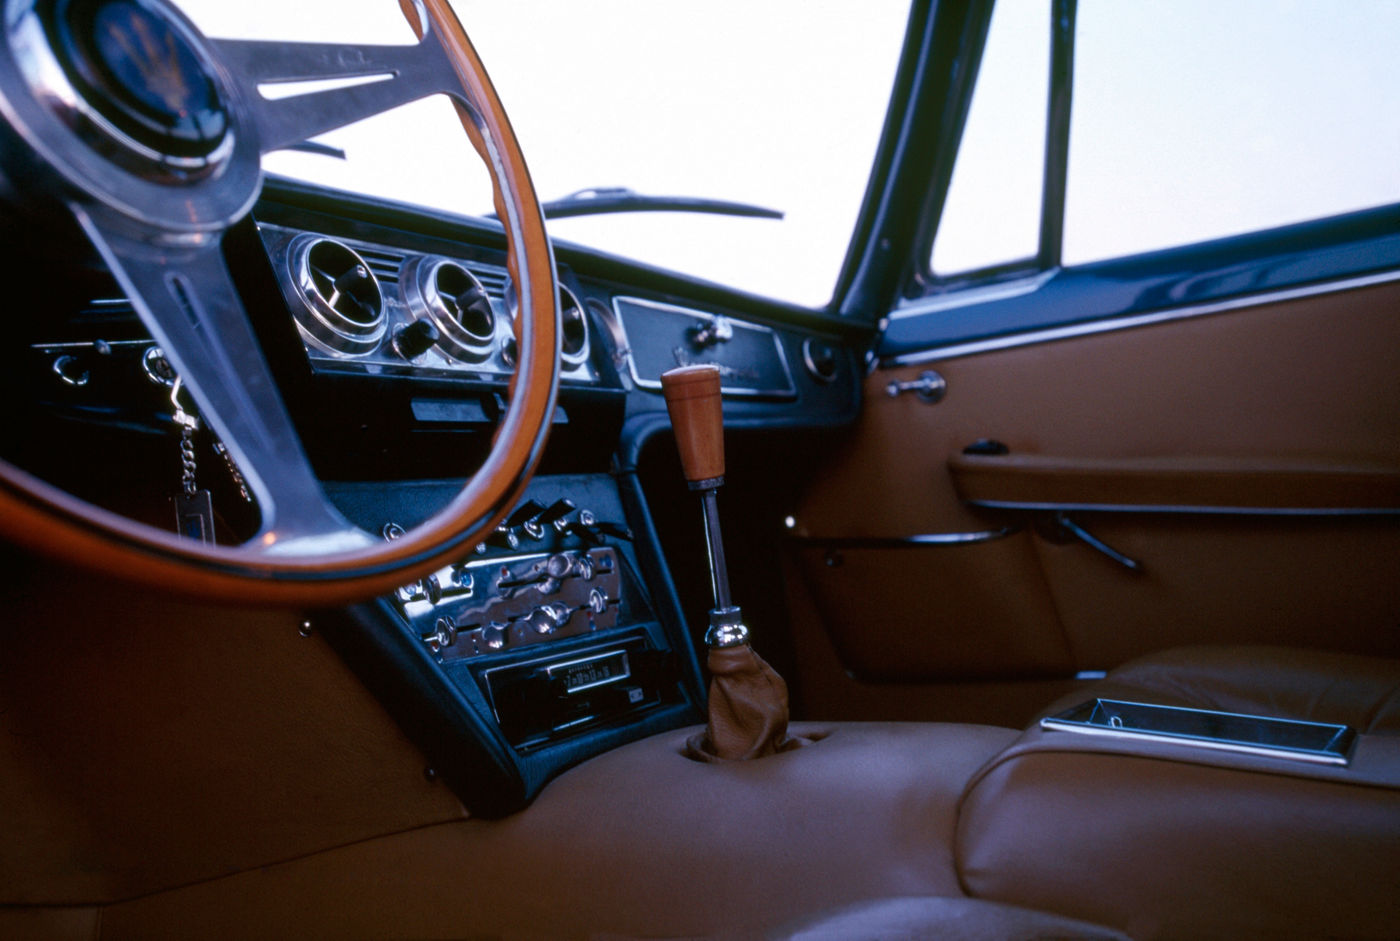 1966 Maserati Quattroporte I - Second Series - interior view of the 5-seater sedan